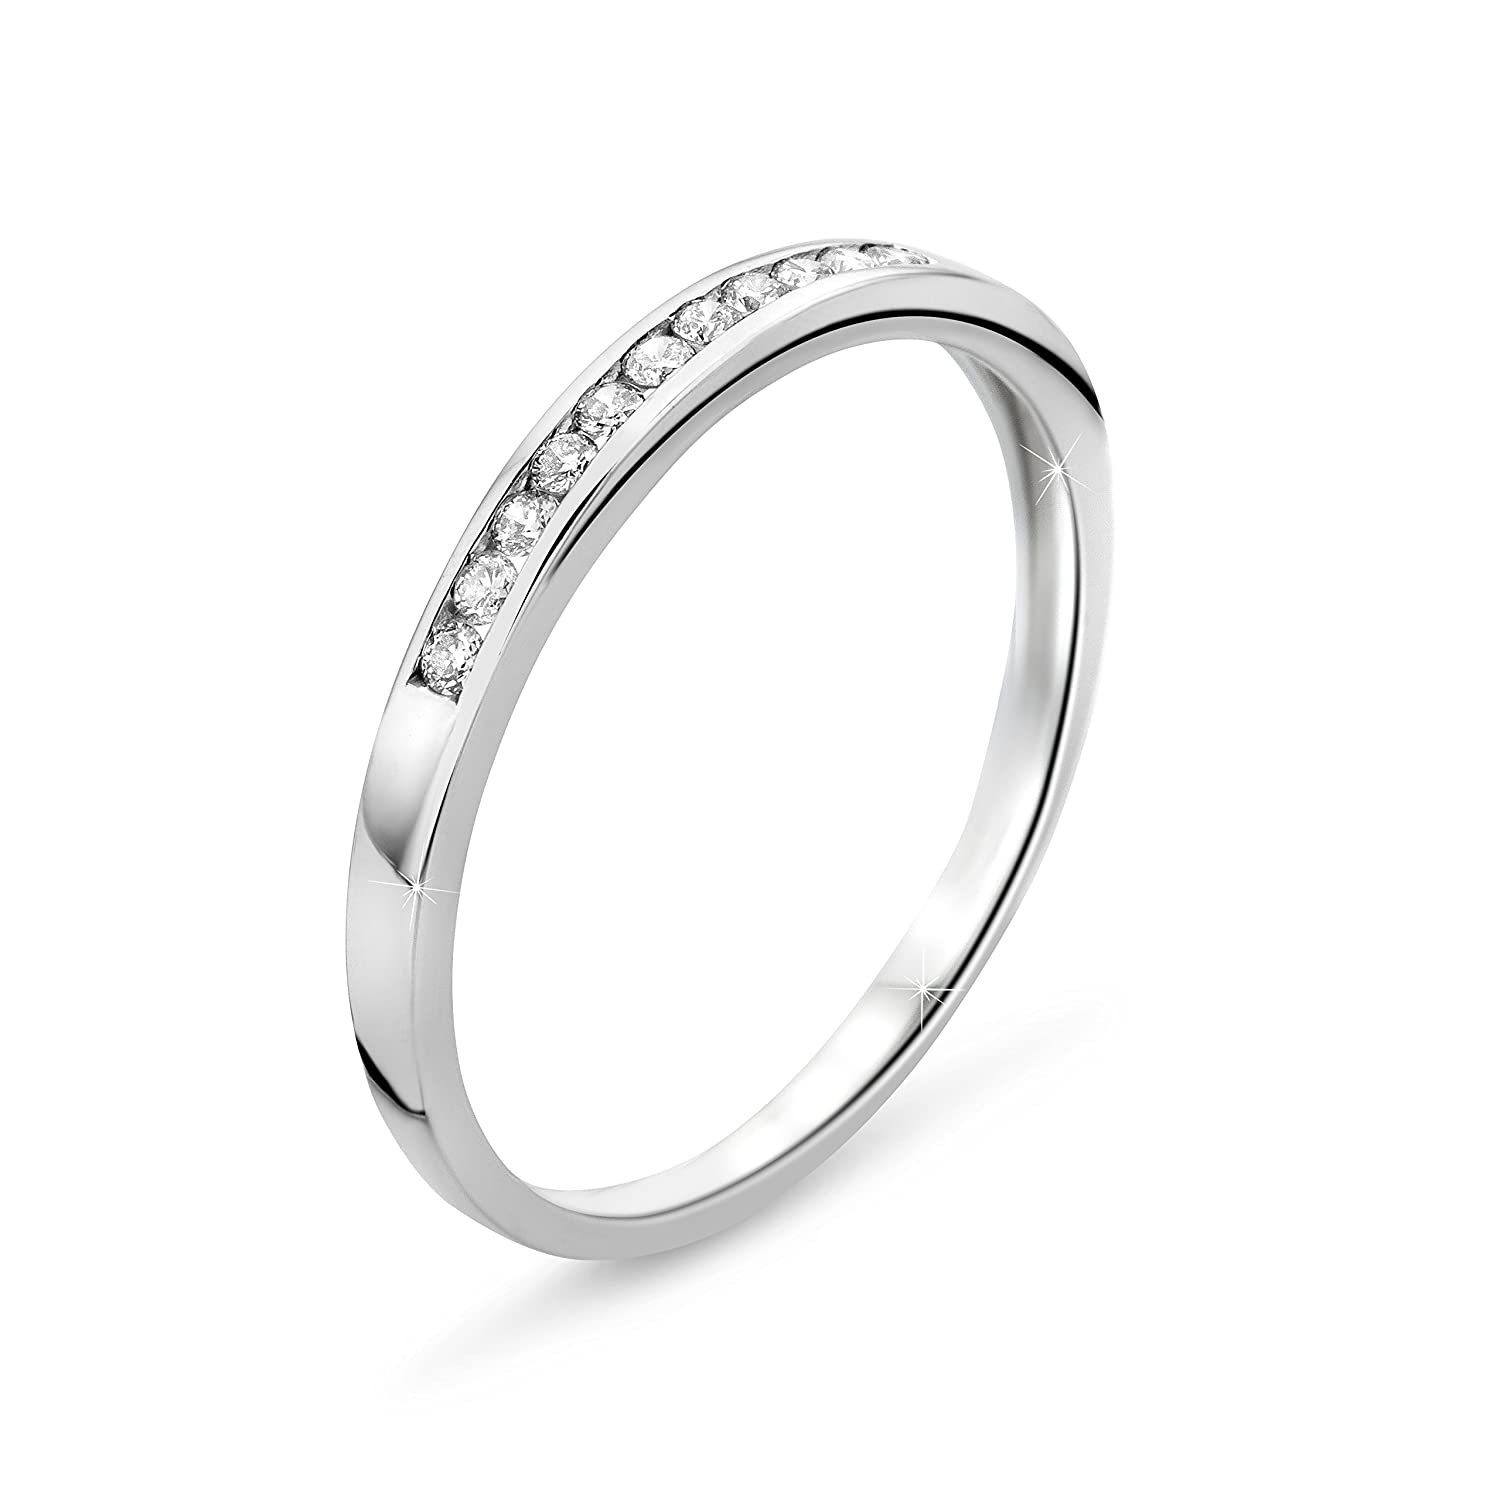 Orovi Woman Eternity Ring 9 ct / 375 White Gold With Diamonds Brilliant Cut 0.10 ct 05ZXH